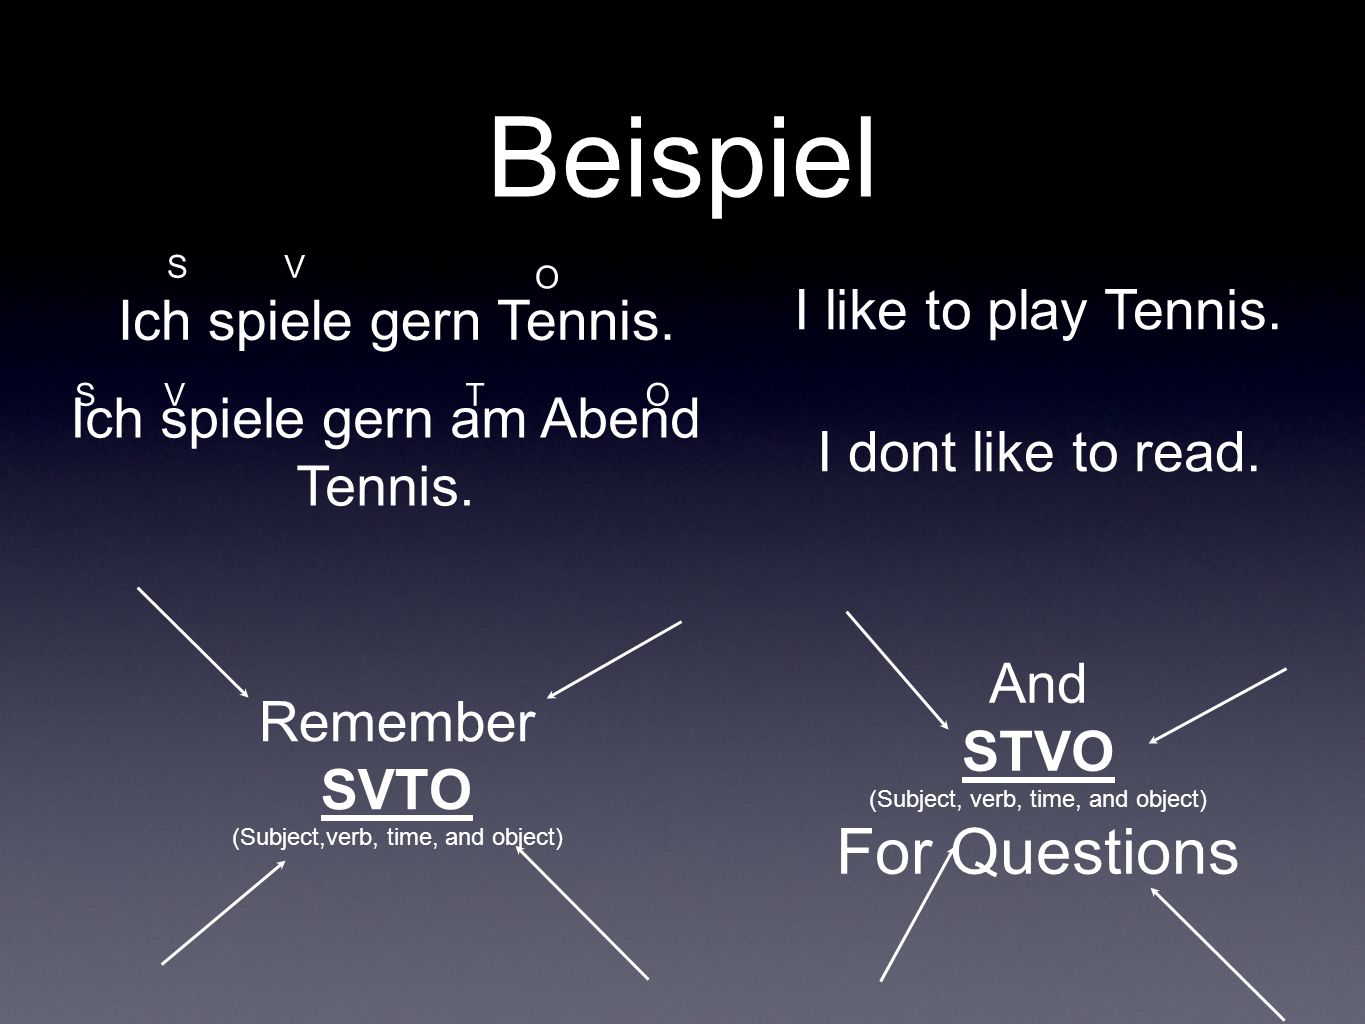 Beispiel Ich spiele gern Tennis. I like to play Tennis. Remember SVTO (Subject,verb, time, and object) And STVO (Subject, verb, time, and object) For